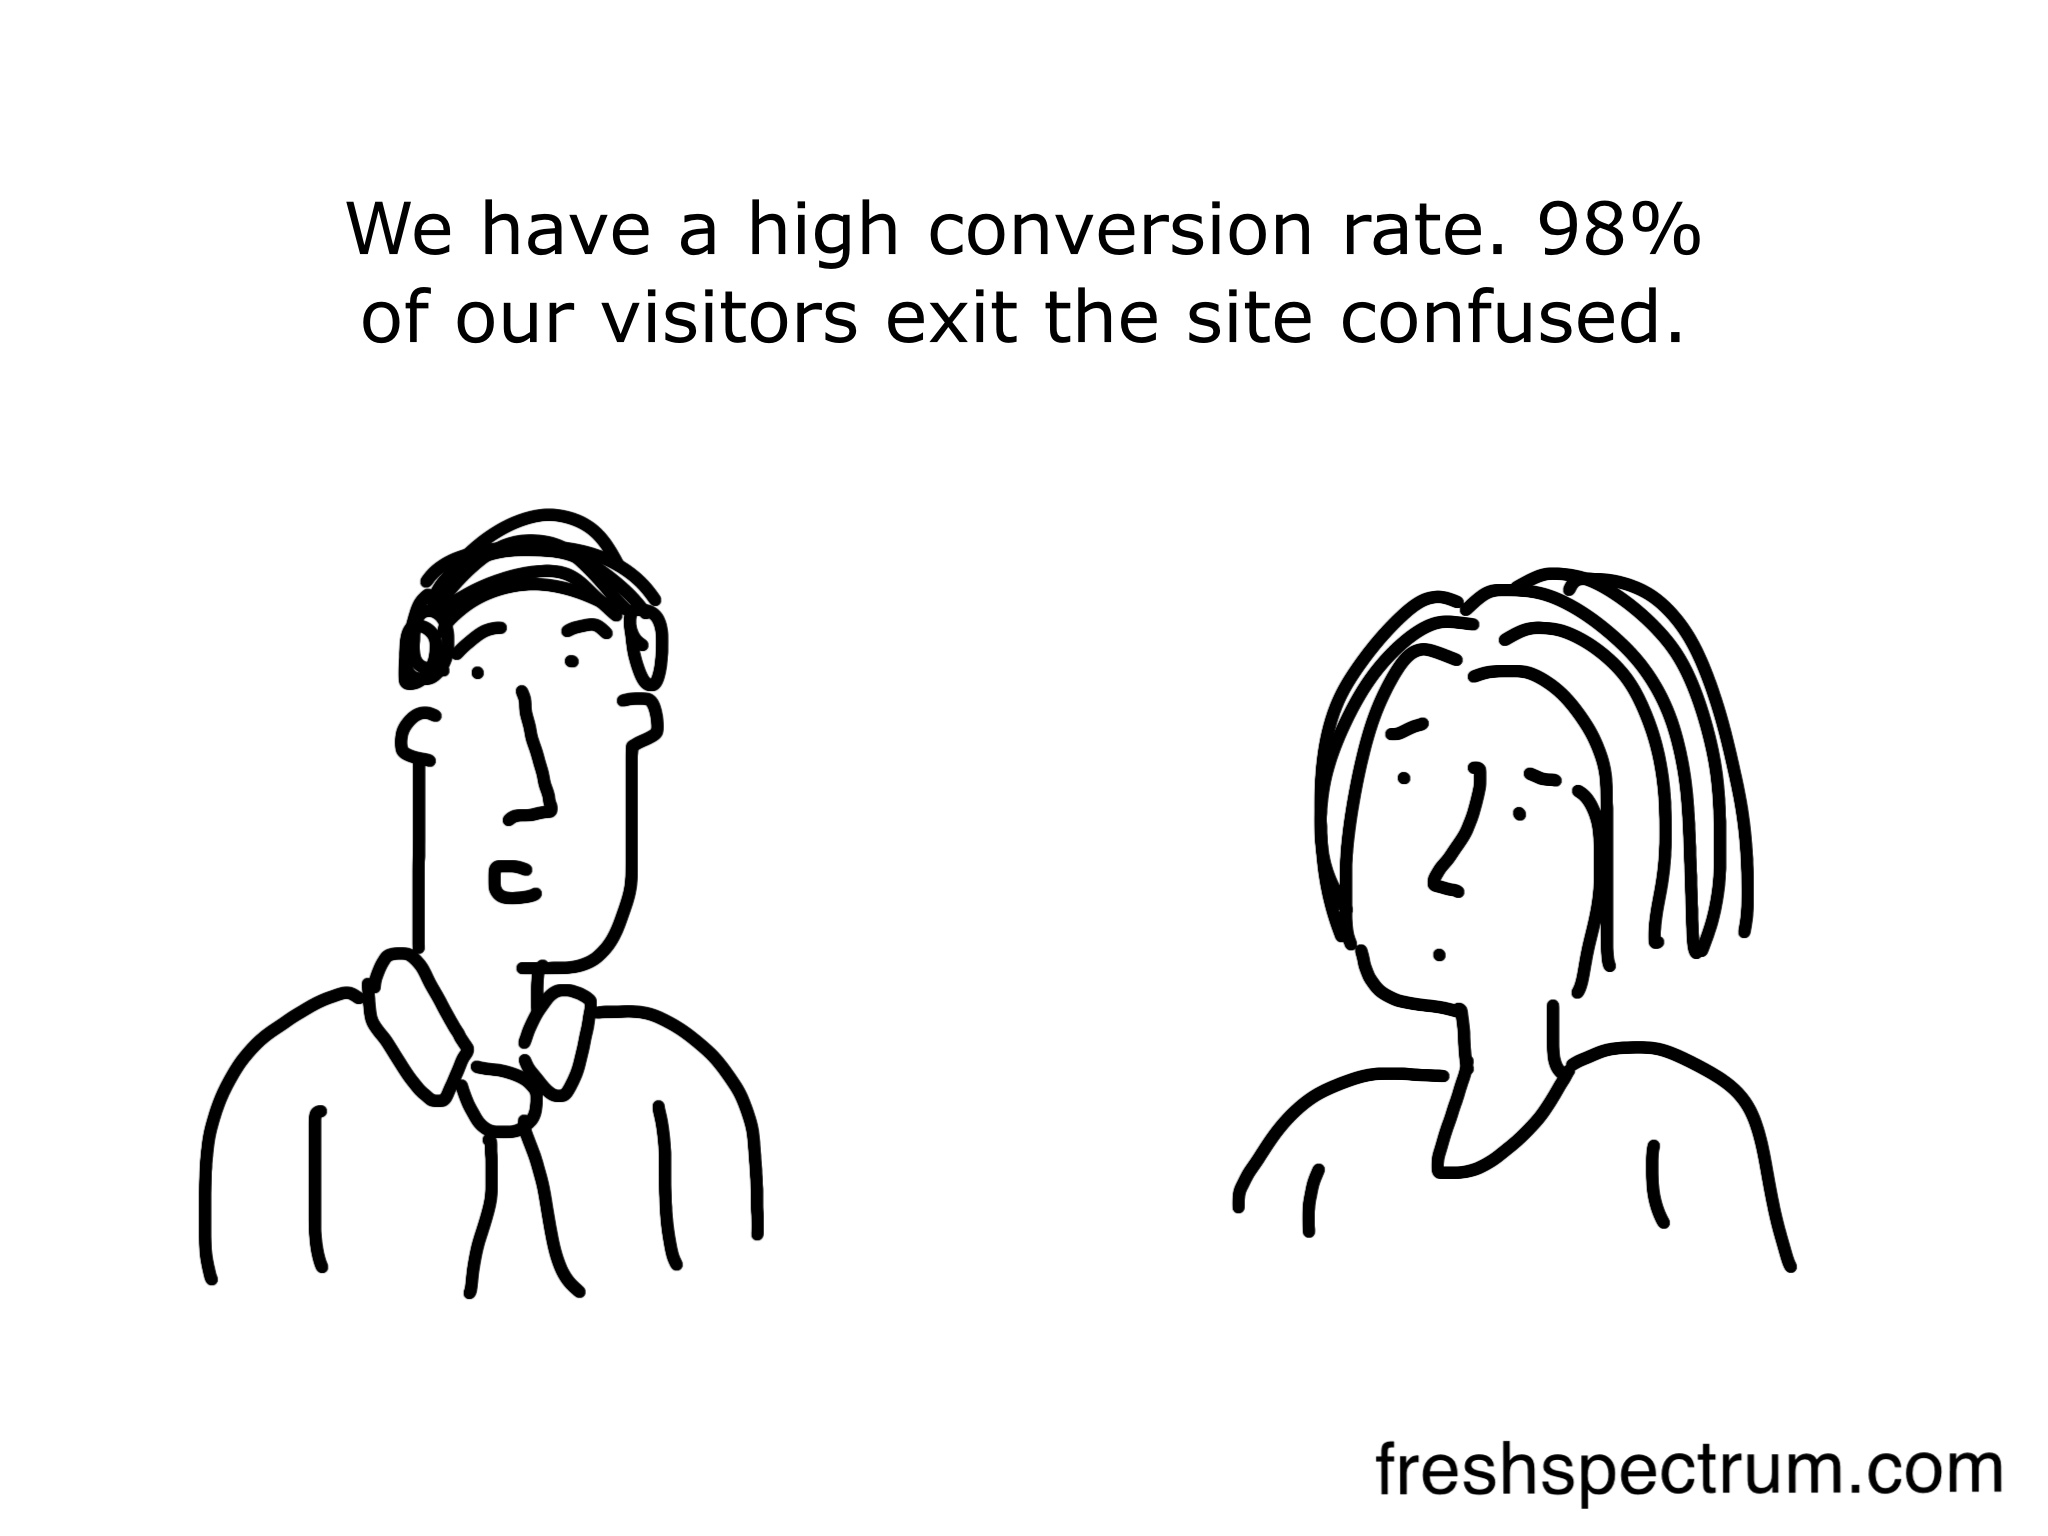 High conversion rate cartoon by Chris Lysy